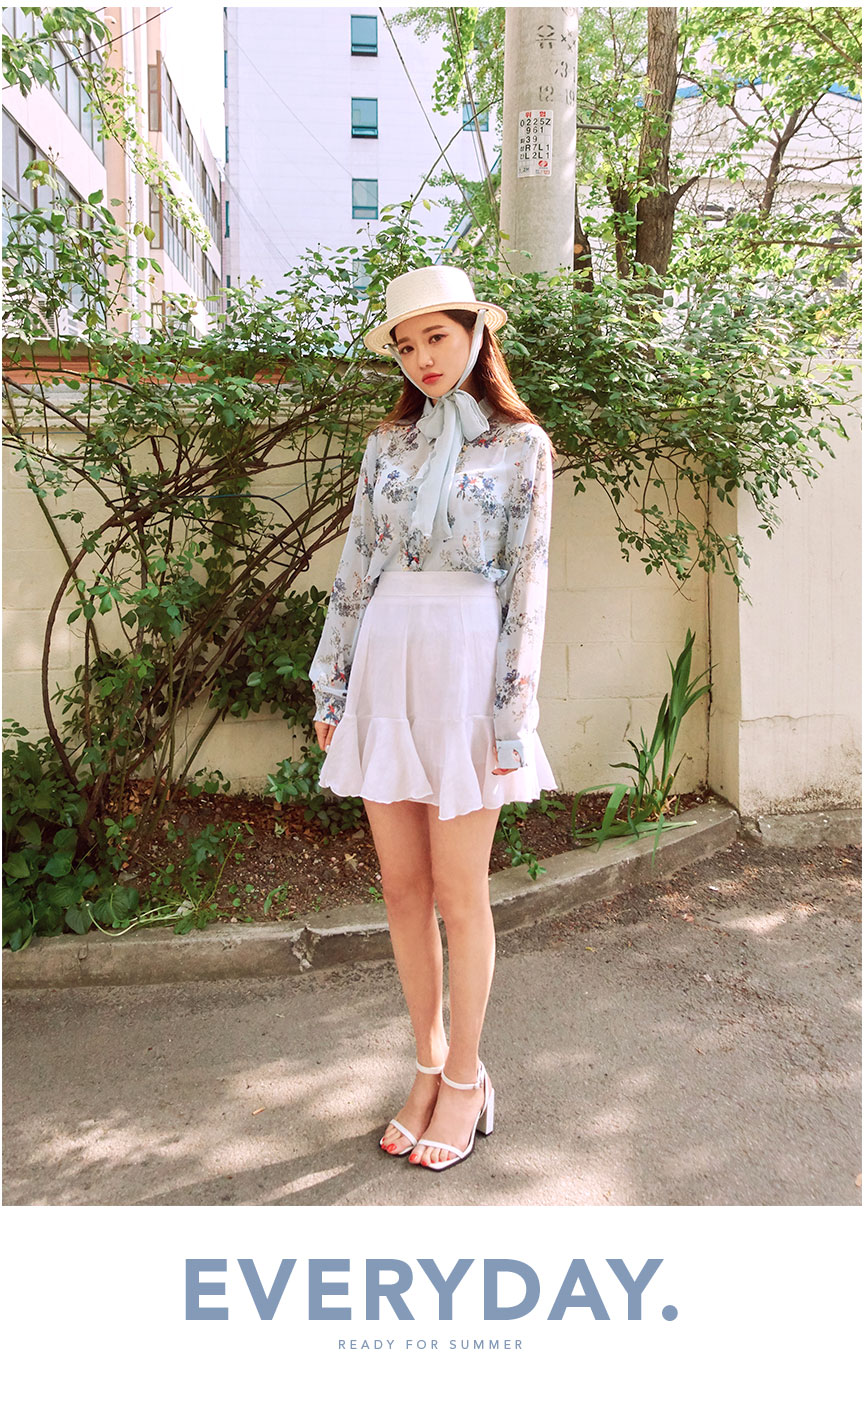 //cdn.nhanh.vn/cdn/store/29770/psCT/20181010/9452006/CHUU_By_My_Side_Flower_Blouse_(24).jpg